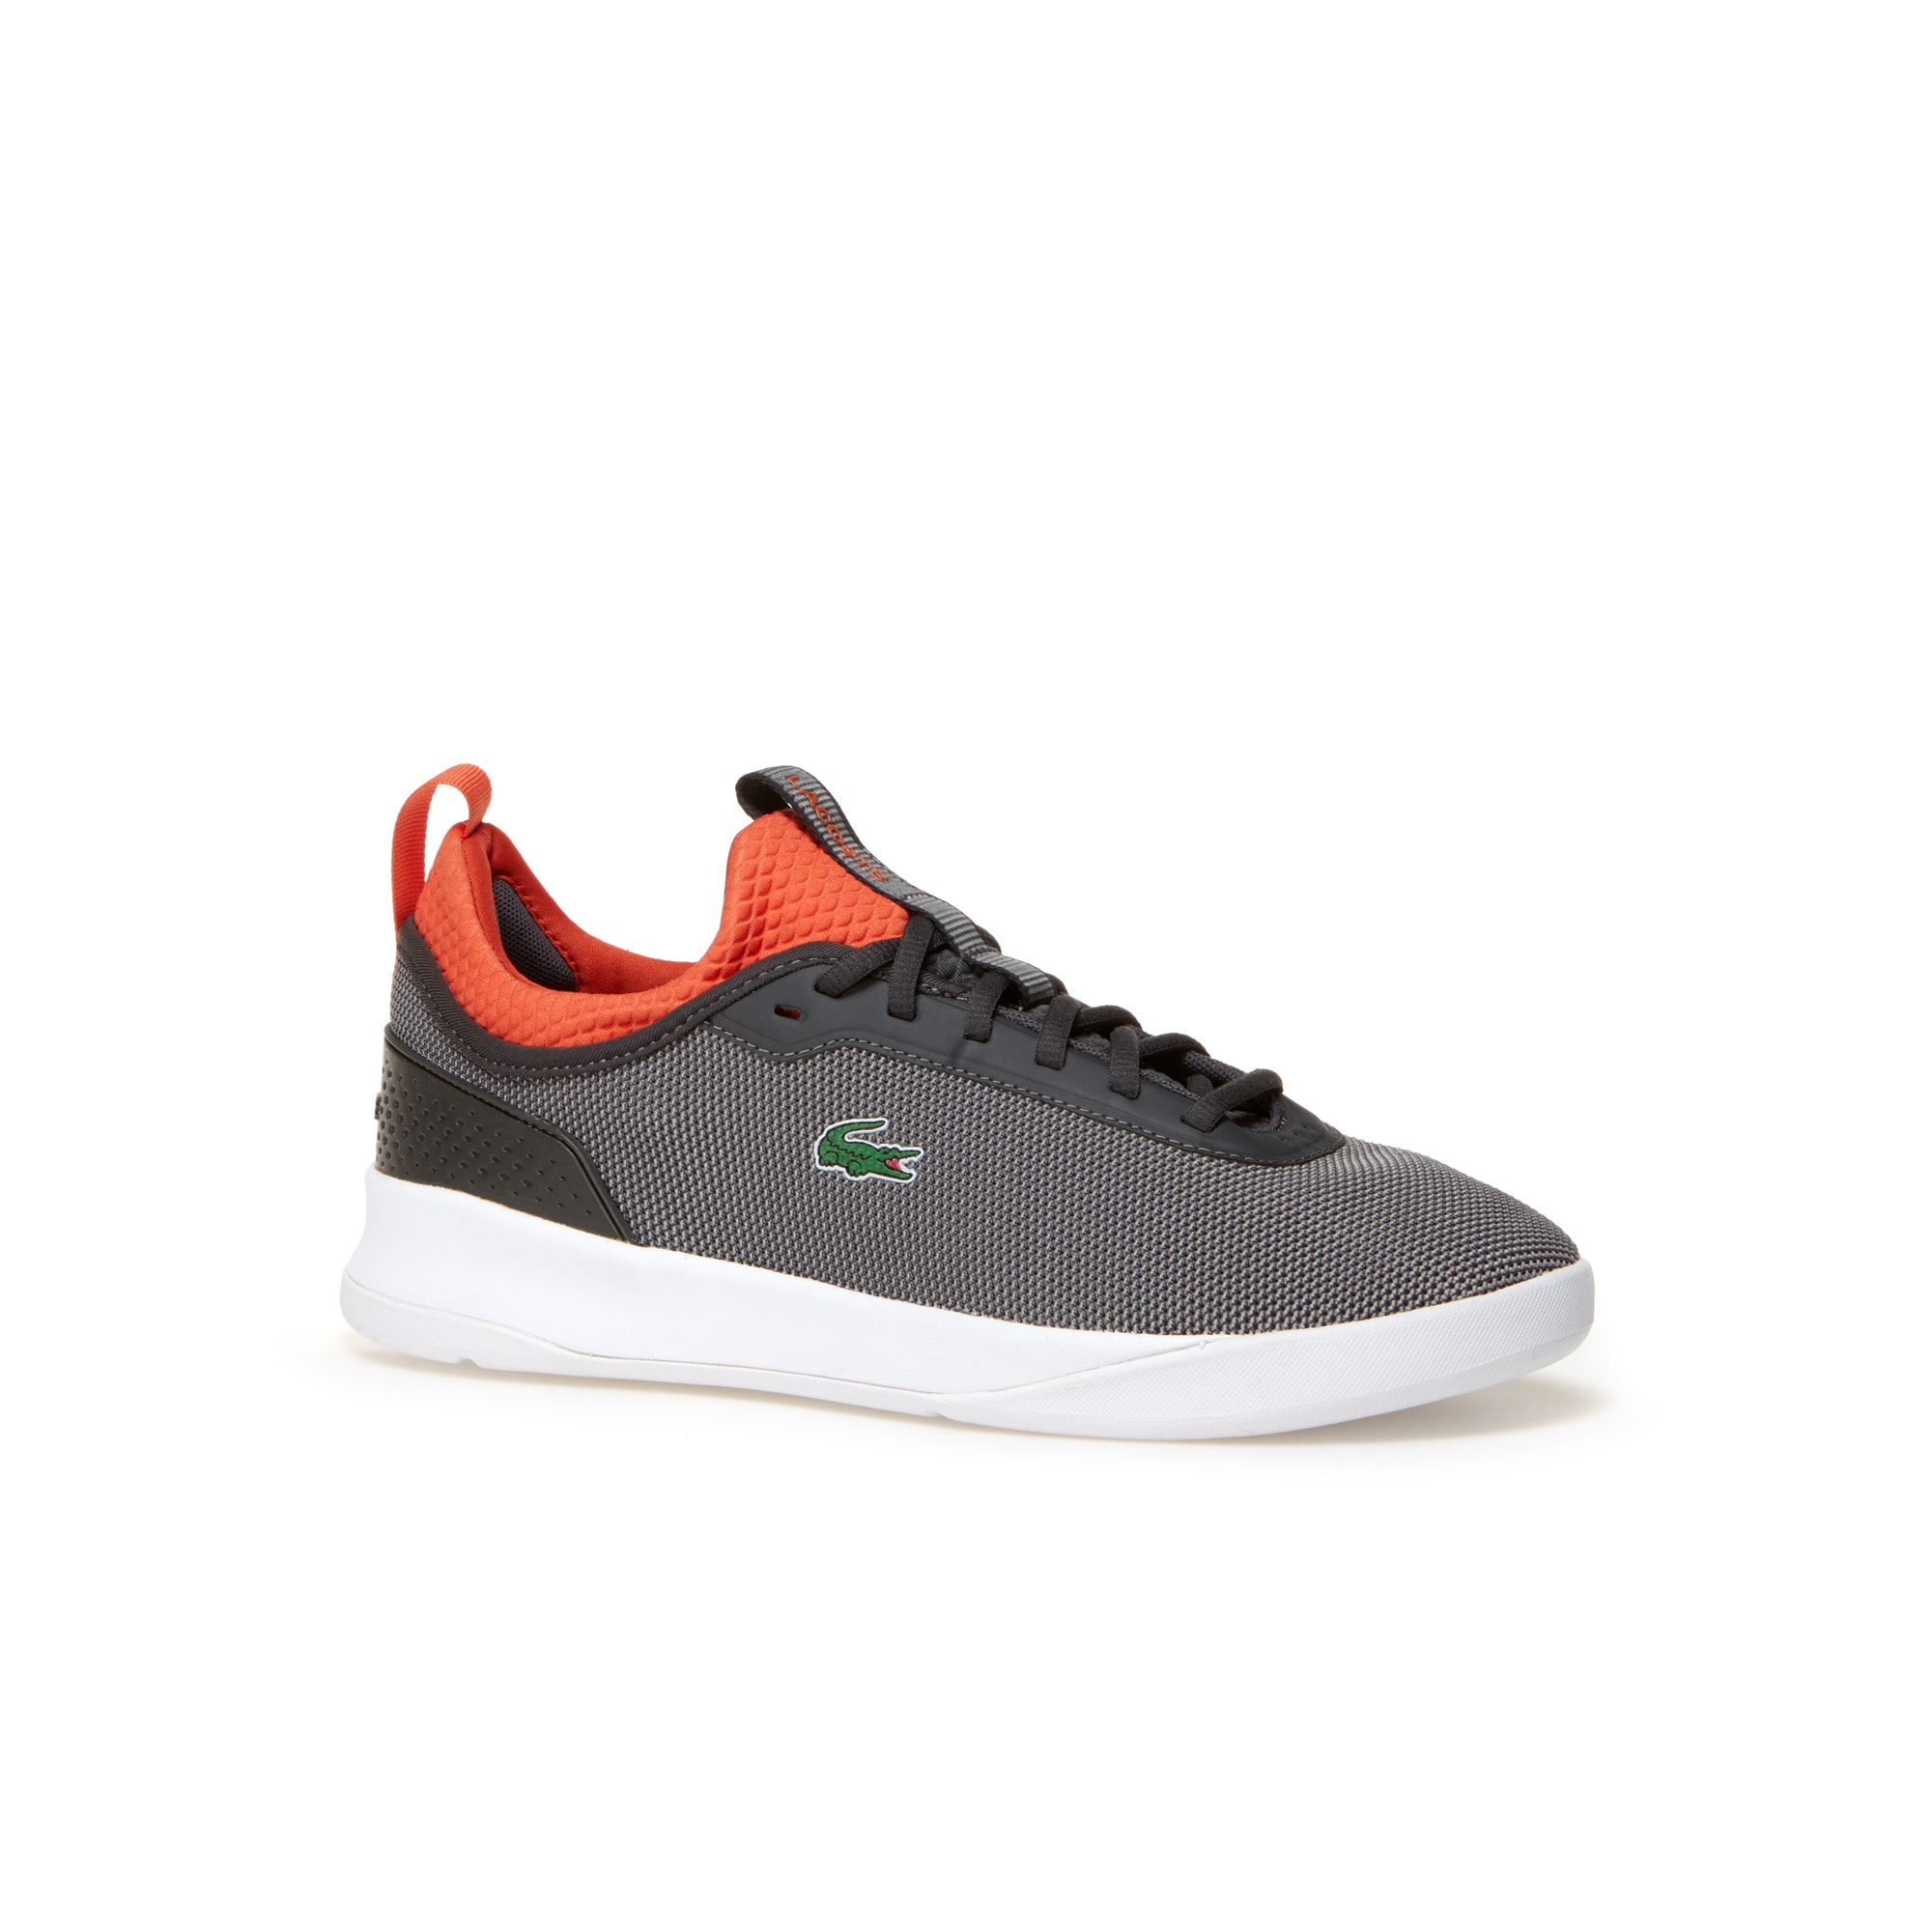 Sneakers LT Spirit 2.0 en knit piqué